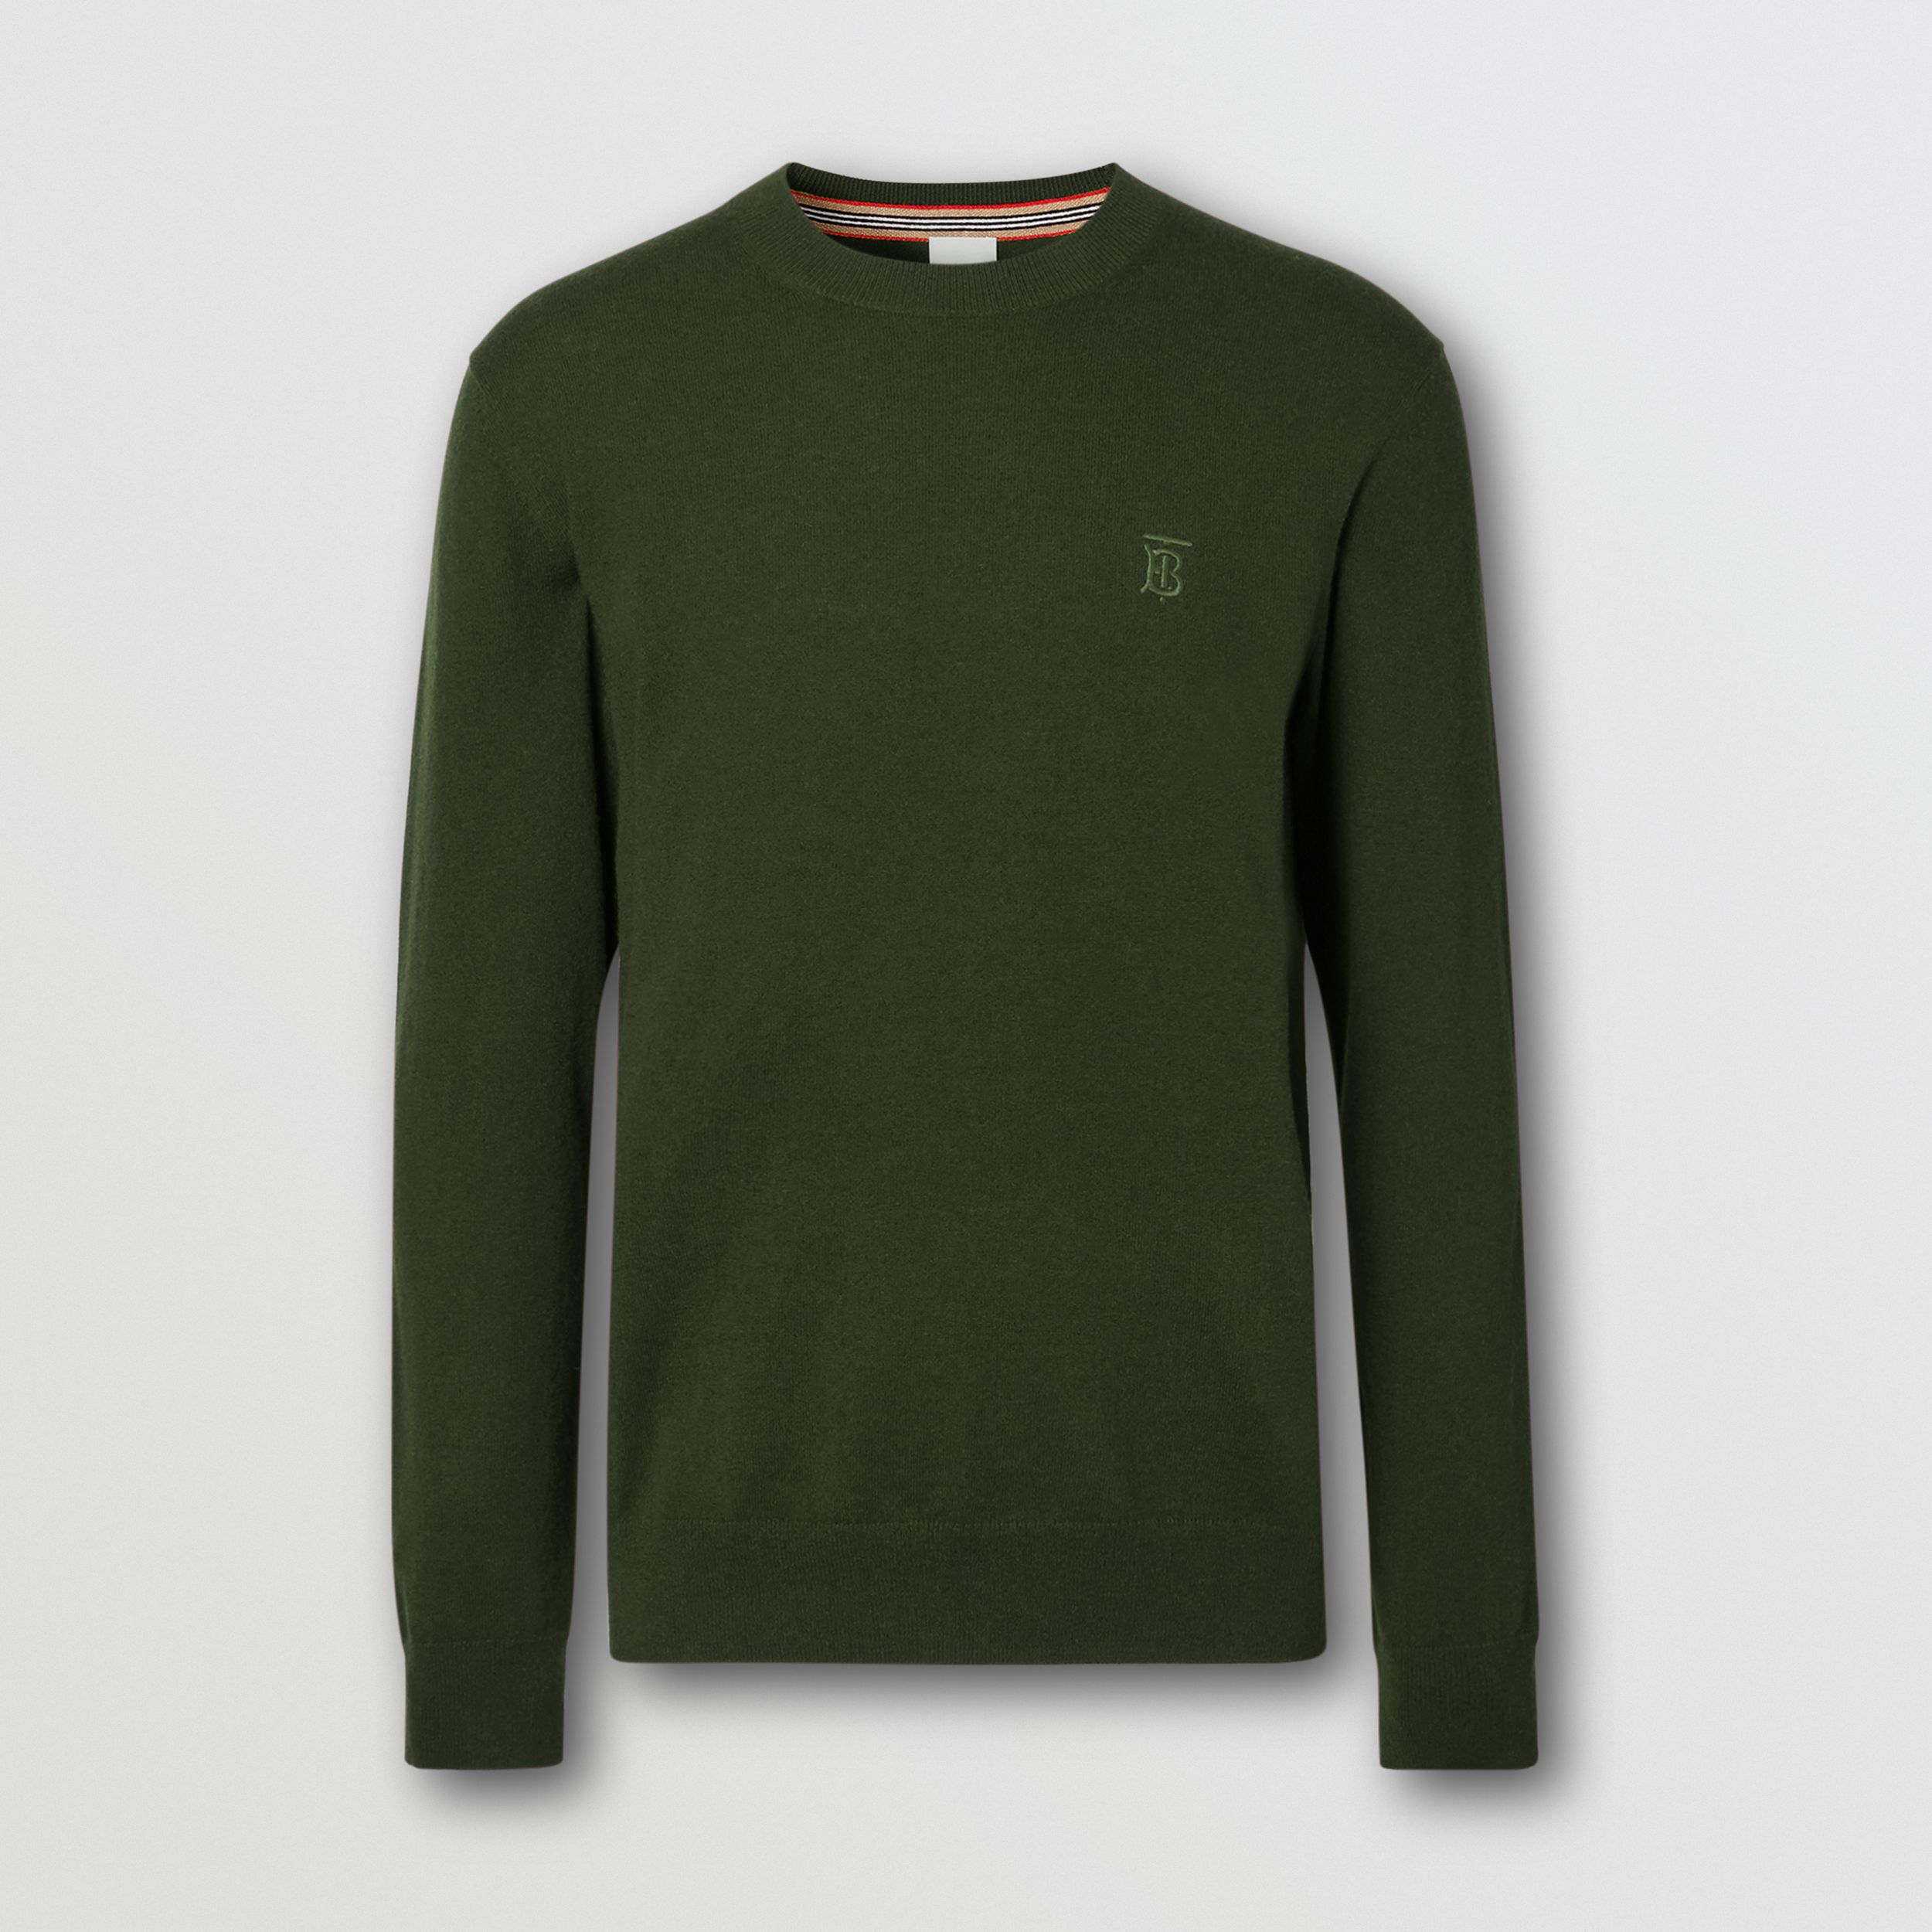 Monogram Motif Cashmere Sweater in Deep Khaki - Men | Burberry - 4